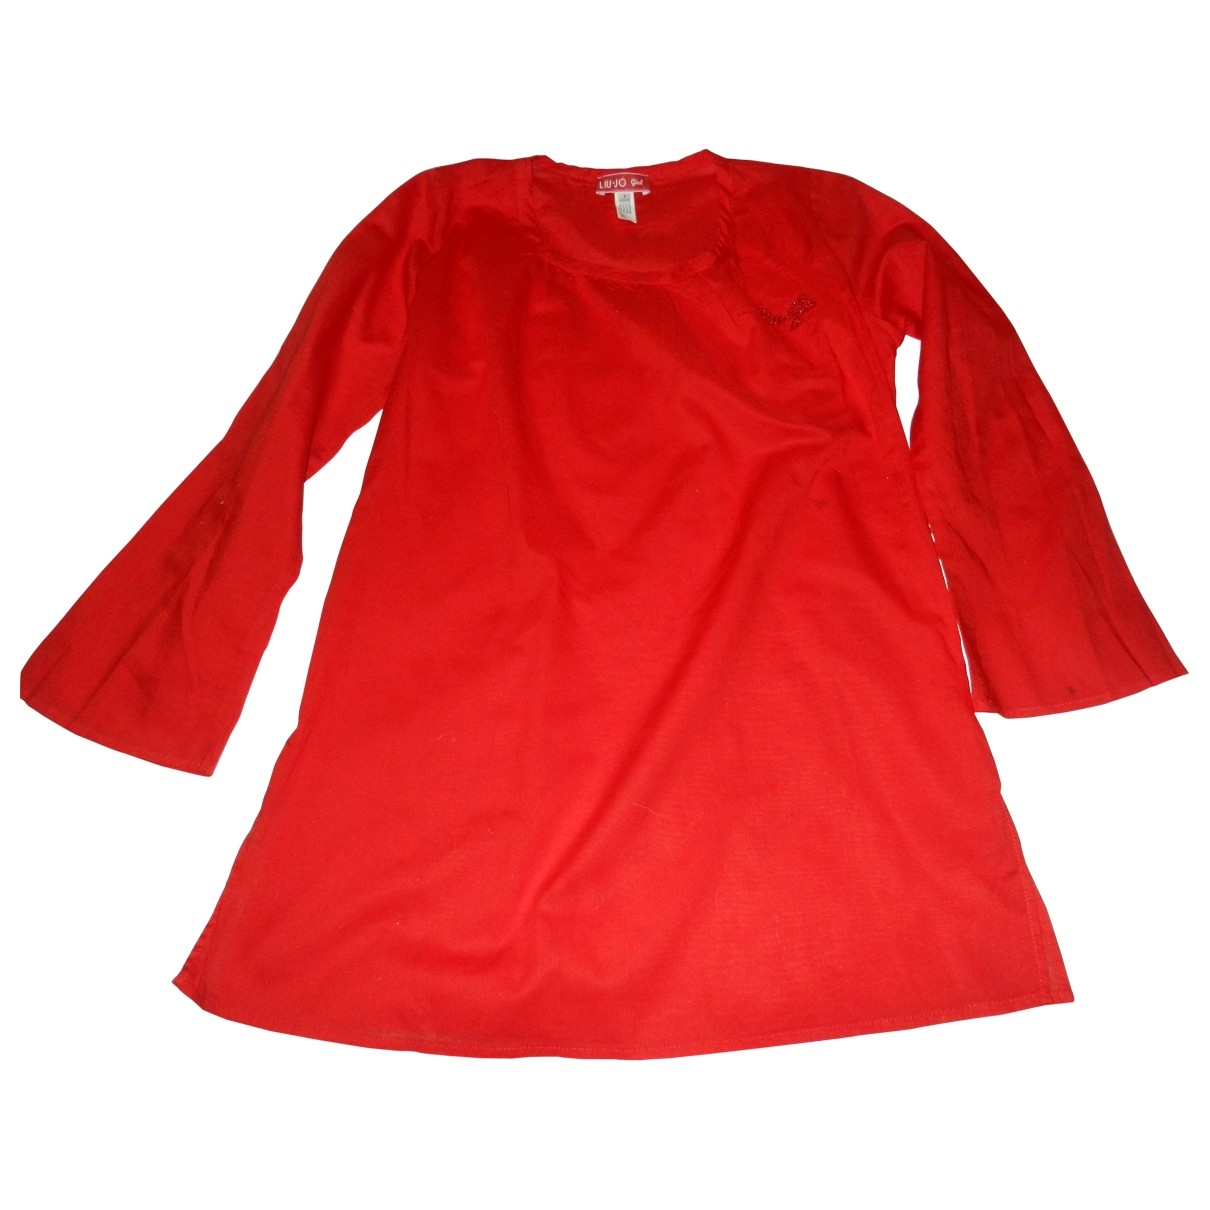 Liu.jo \N Red Cotton  top for Kids 8 years - up to 128cm FR